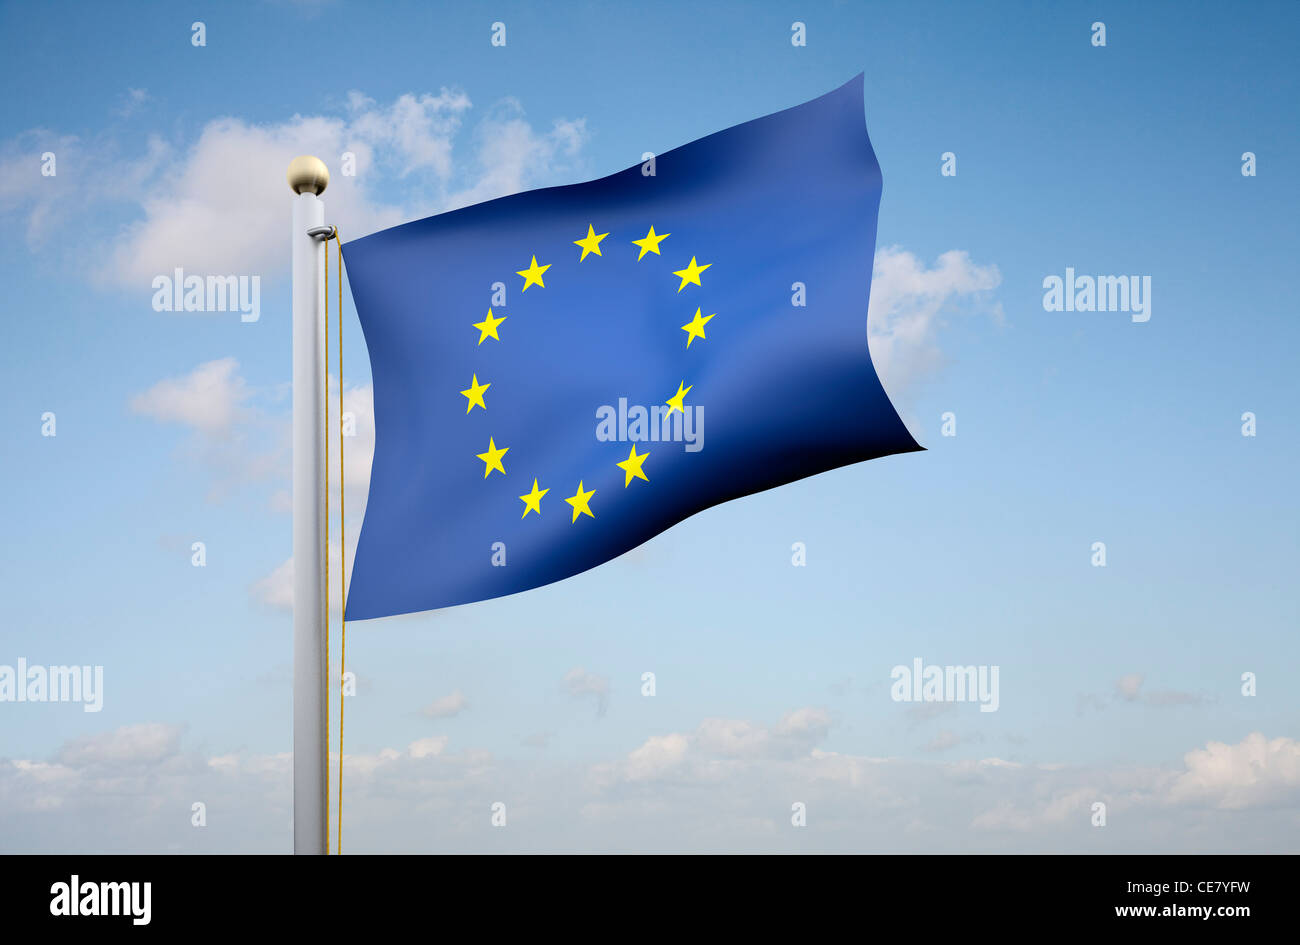 The flag of the European Union - Stock Image